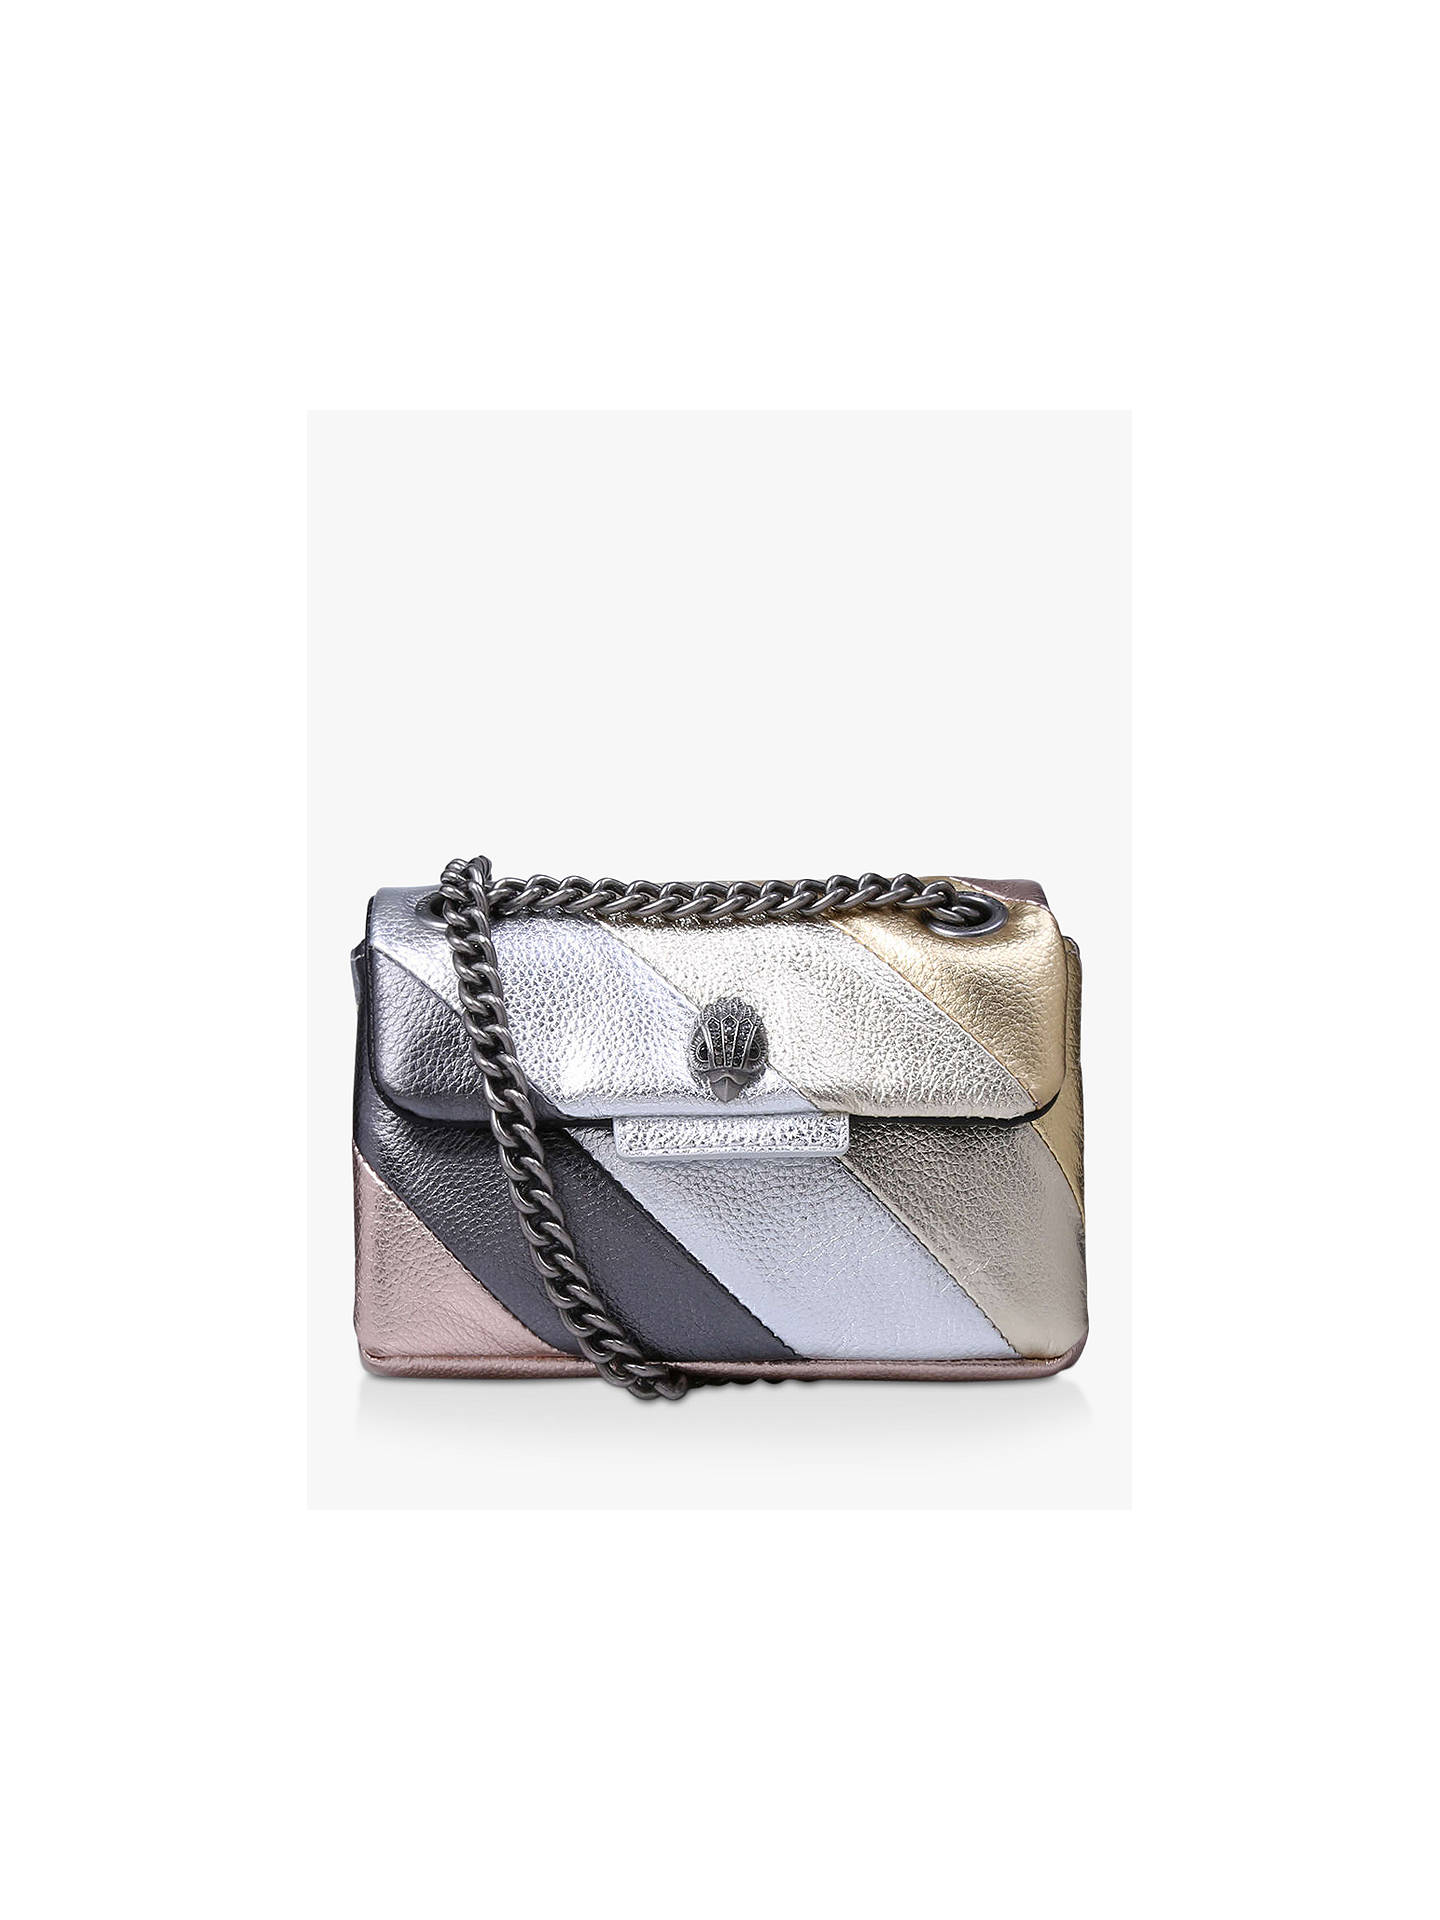 outlet store detailed look new lower prices Kurt Geiger London Mini Kensington Leather Cross Body Bag at John ...